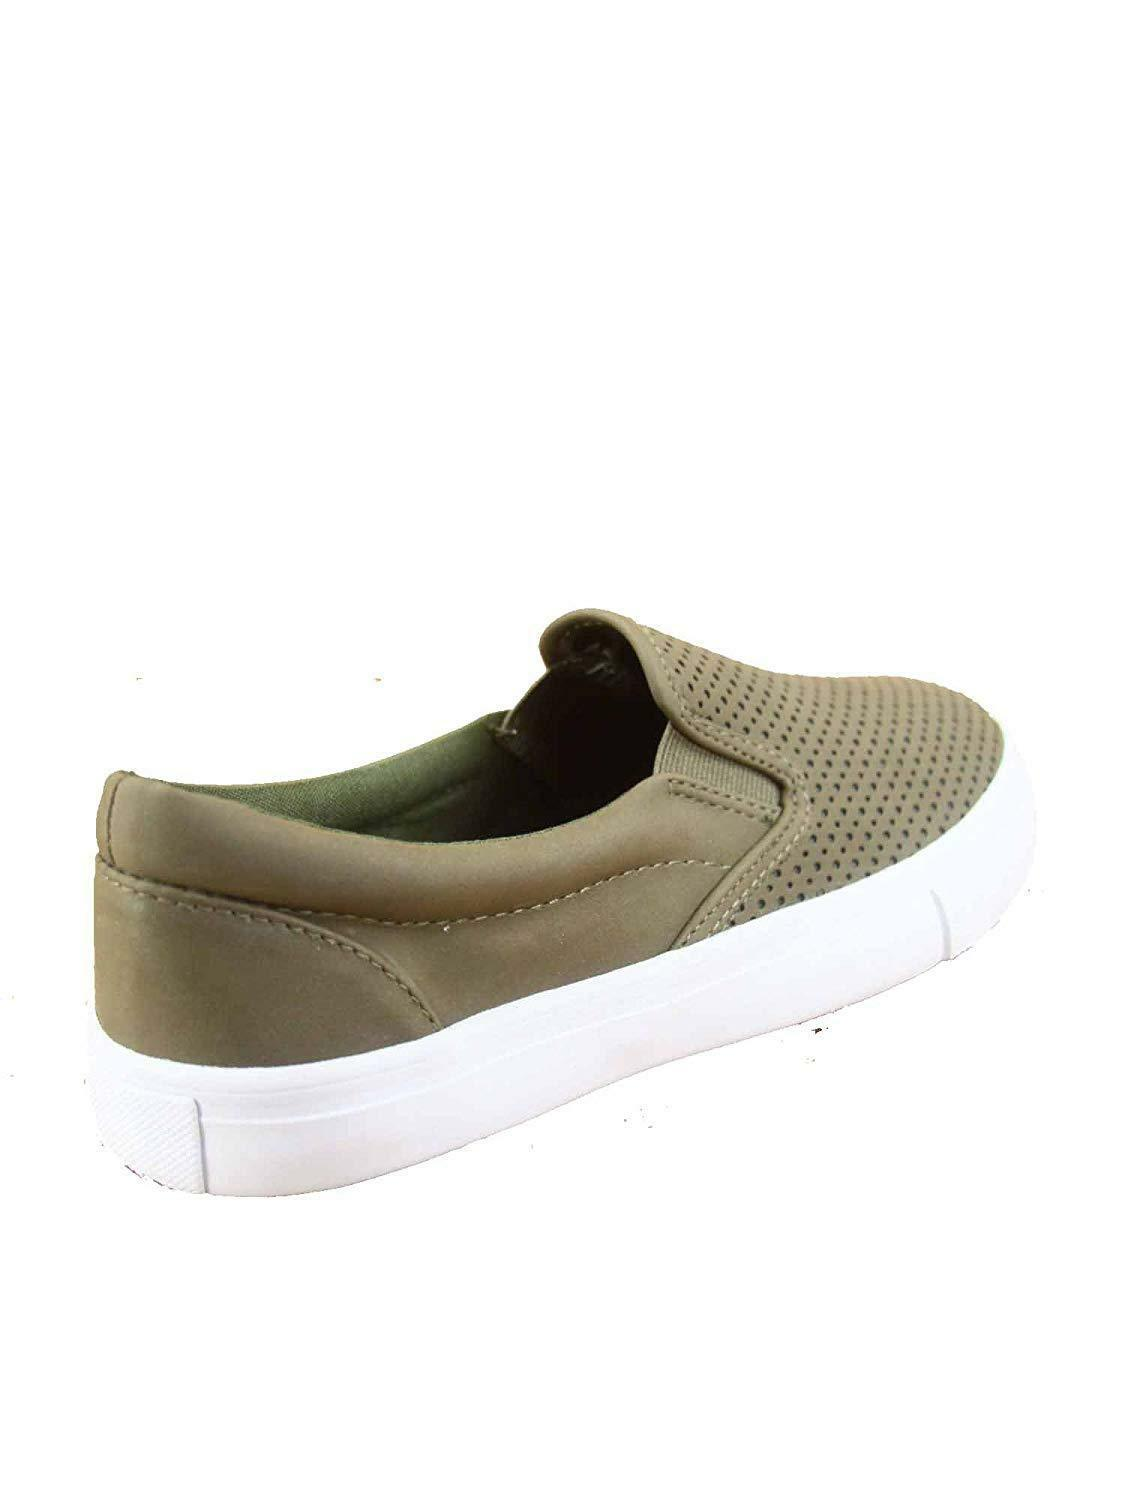 Soda Tracer-S Women's Cute Perforated Slip On Flat Round Toe Sneaker Shoes image 3